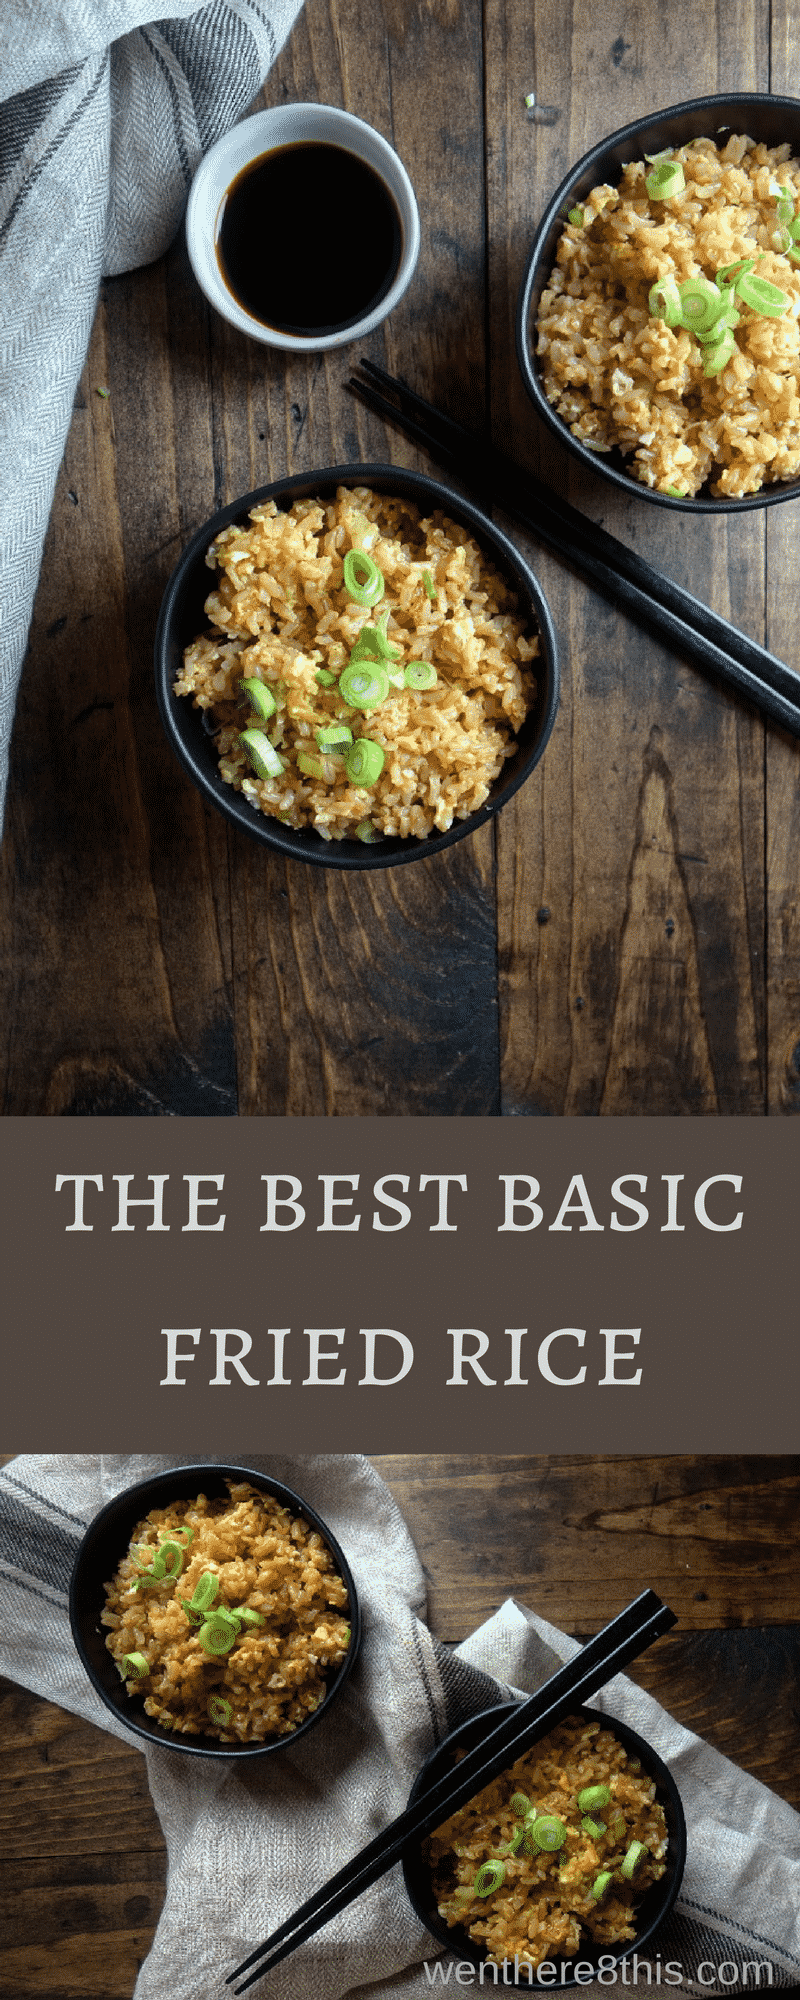 This basic fried rice with Chinese sausage is super easy to make and a perfect staple for all those homemade takeout Chinese dishes! easy fried rice recipe | the best fried rice recipe | 10 minute fried rice | chinese fried rice | fried rice with egg | chinese sausage | better than takeout fried rice | best ever fried rice | easy rice recipes | Chinese takeout recipes | easy chinese fried rice